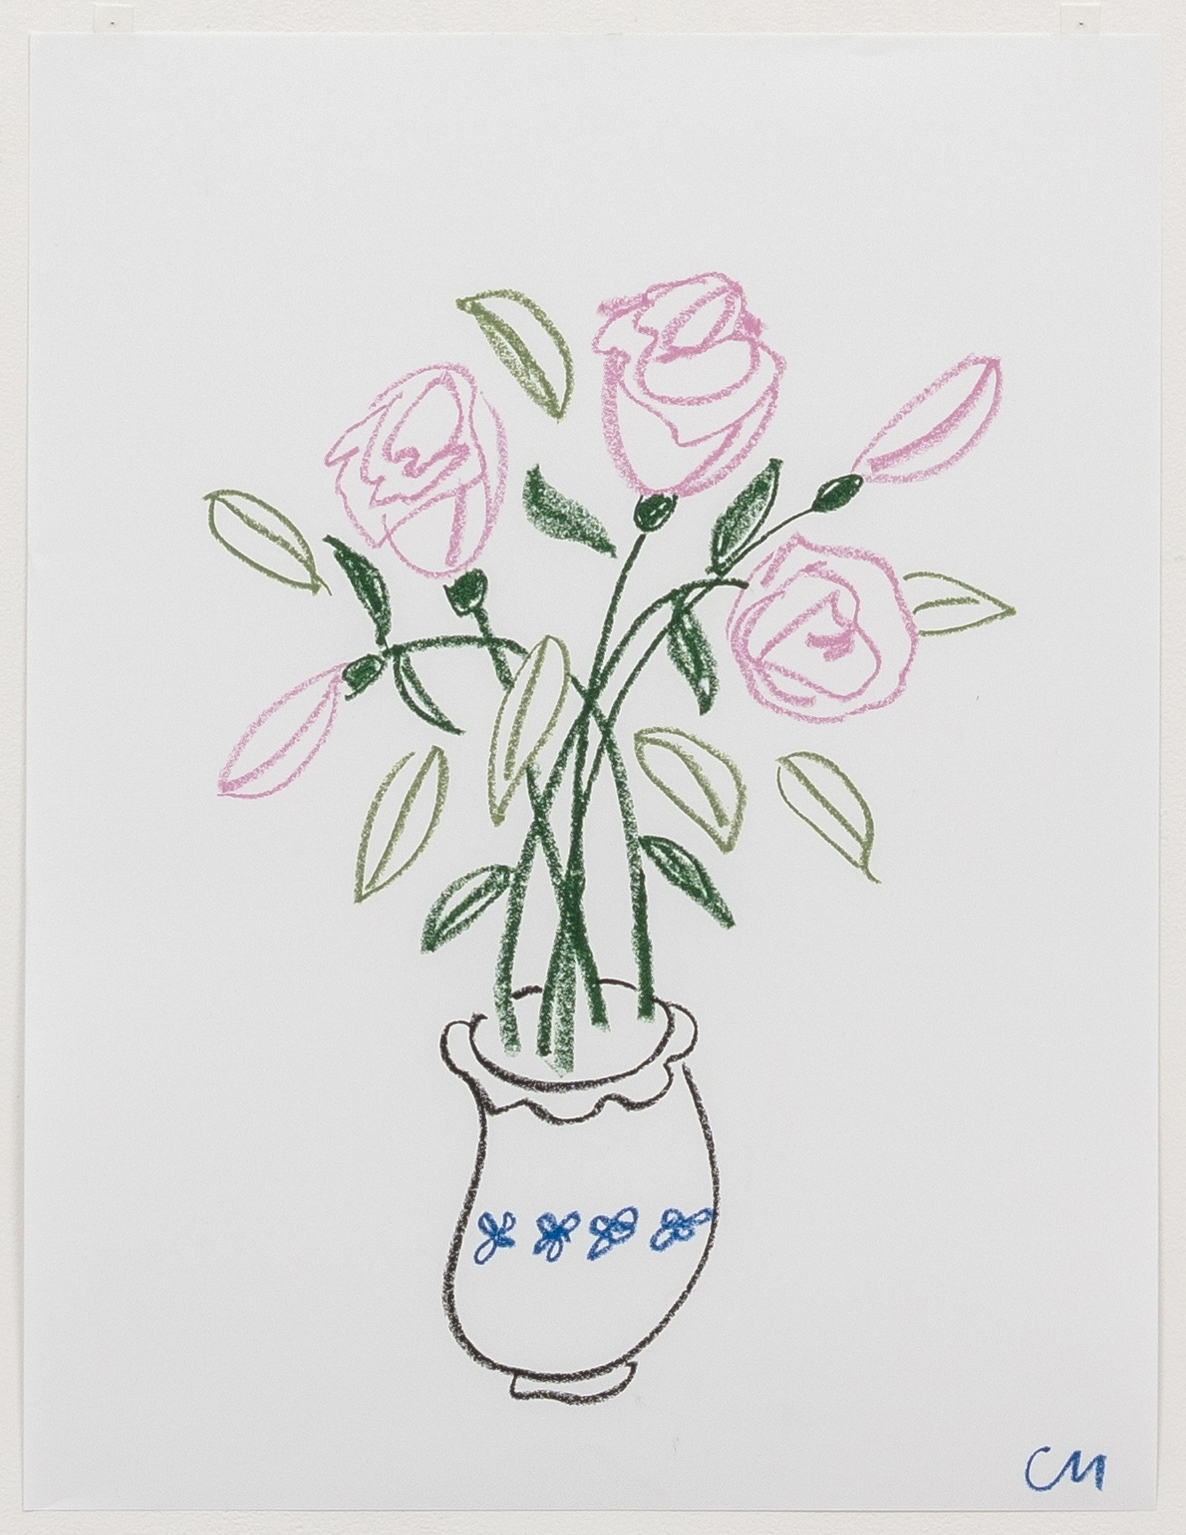 Claire Milbrath. <em>Untitled (44)</em>, 2018. Oil pastel on paper, 23 1/2 x 18 inches  (59.7 x 45.7 cm)